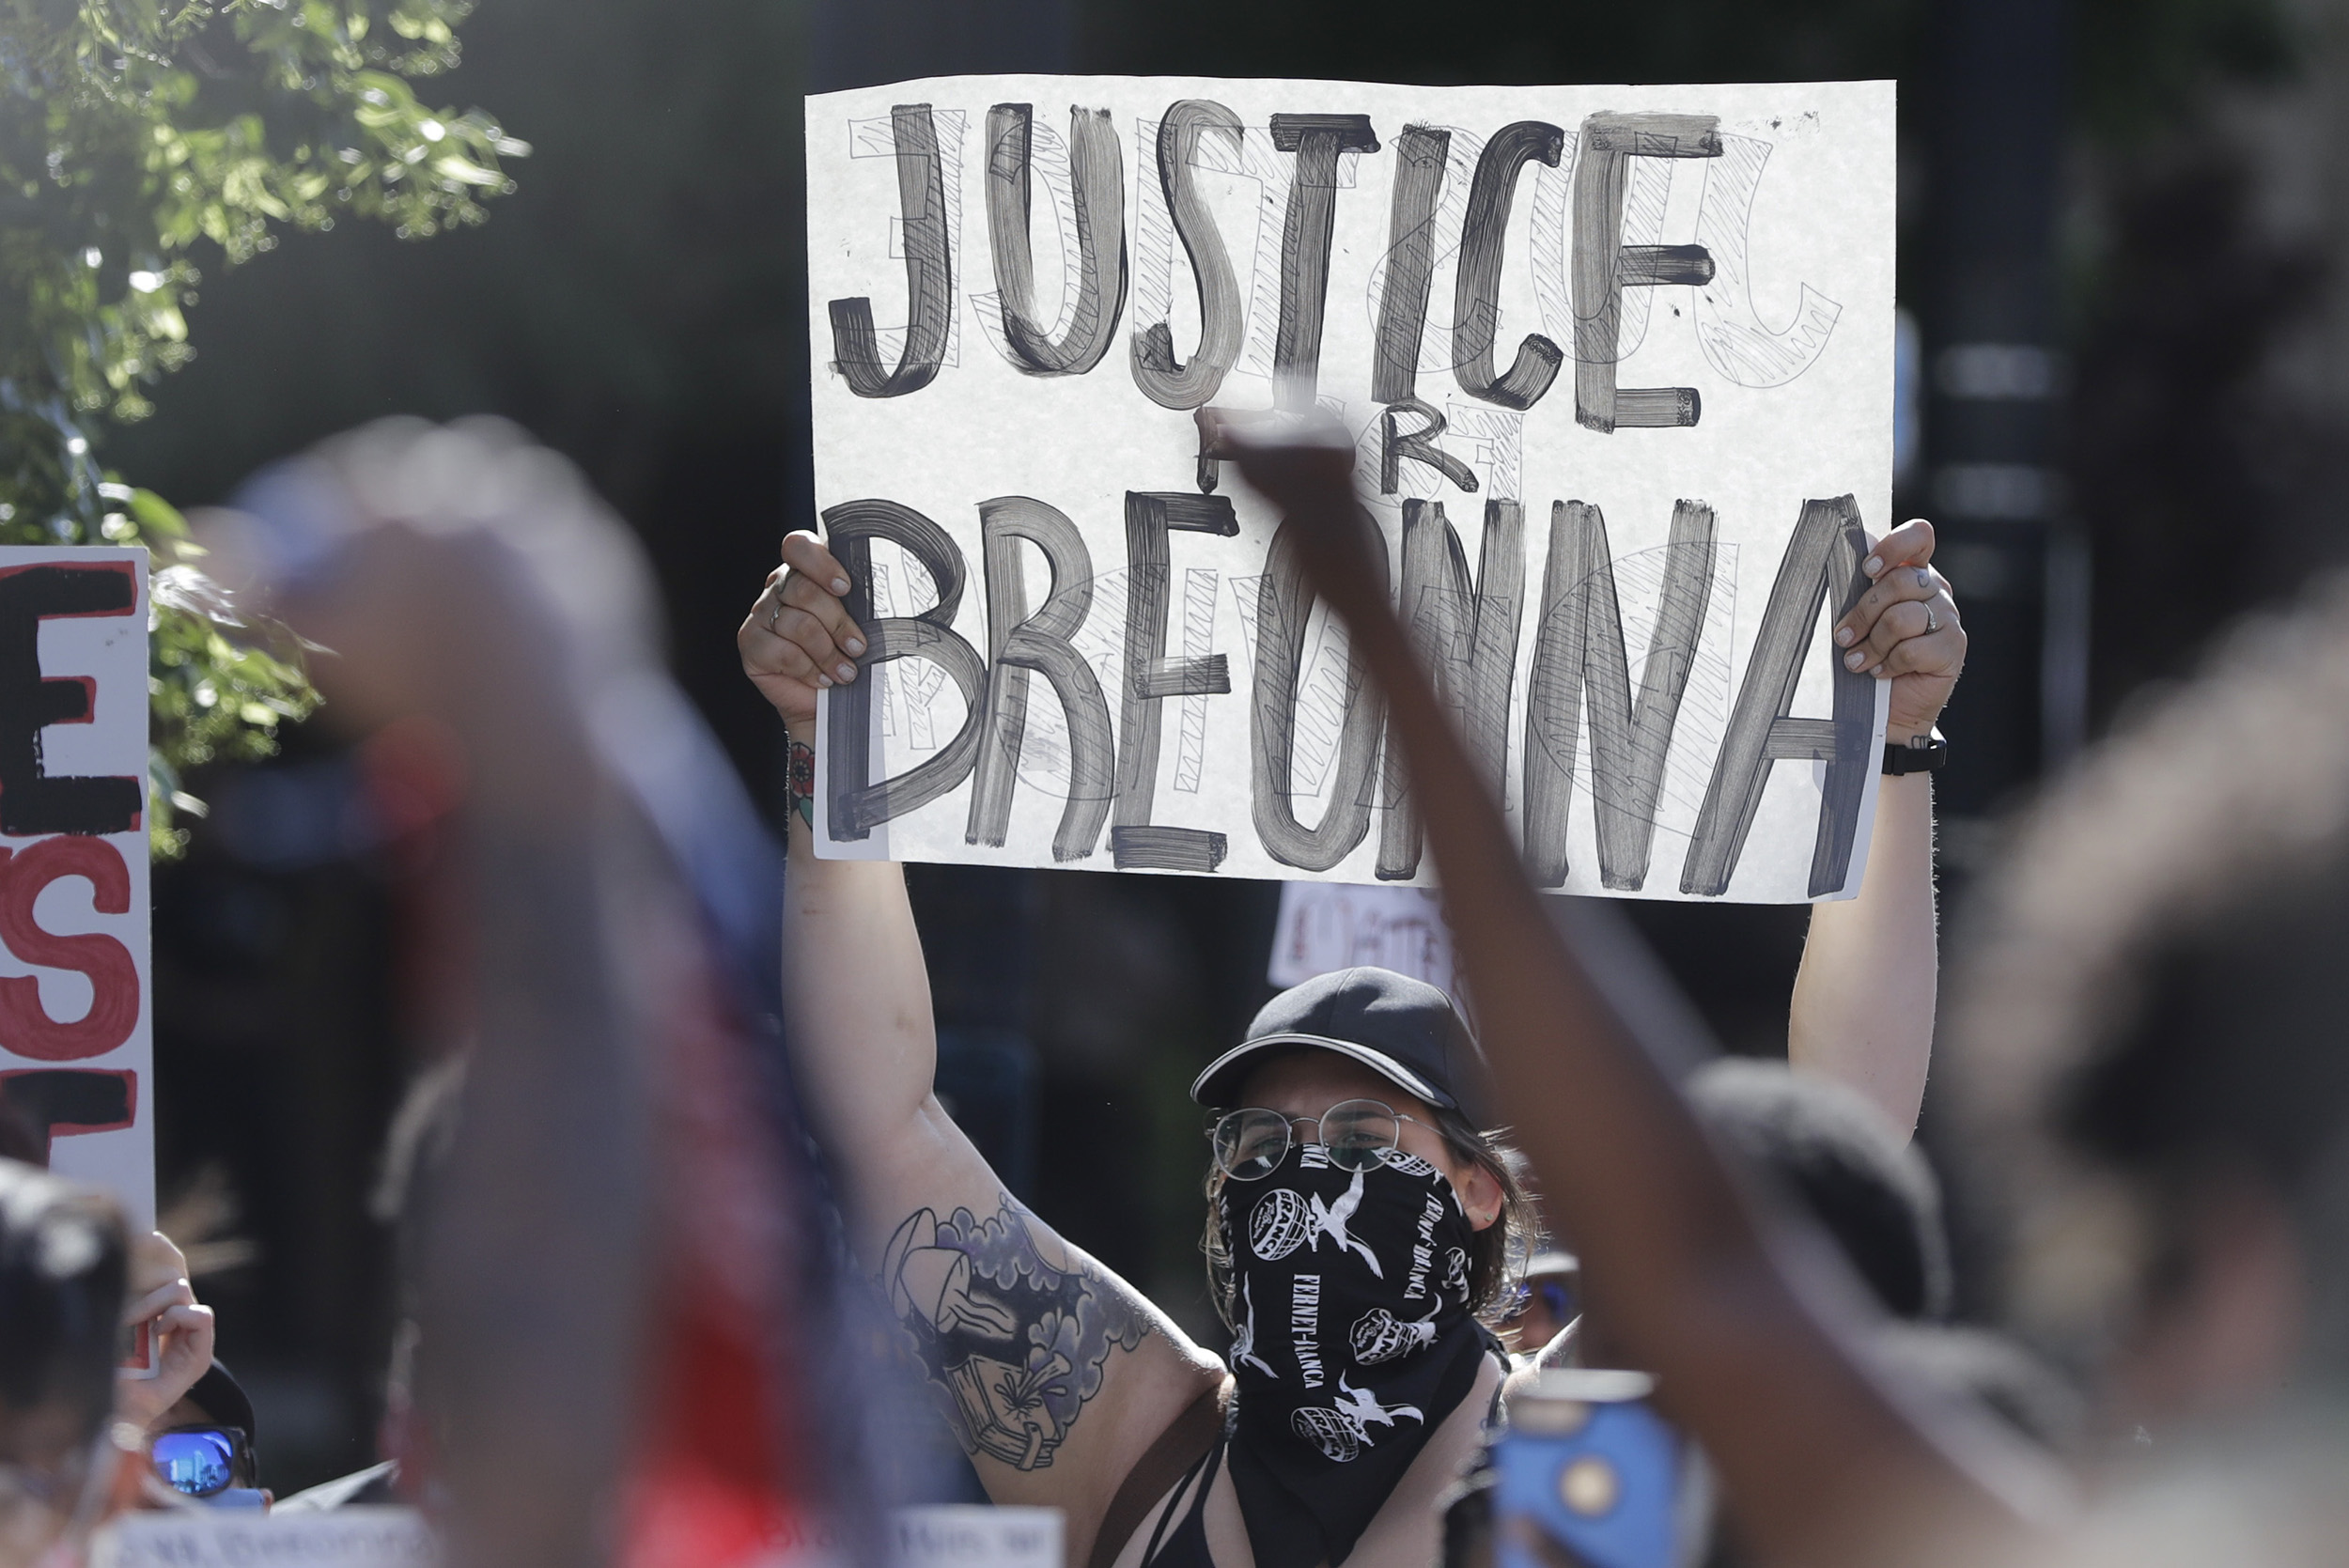 A protester holds a sign during a protest over the death of Breonna Taylor, on Monday, June 1, in Louisville, Kentucky.